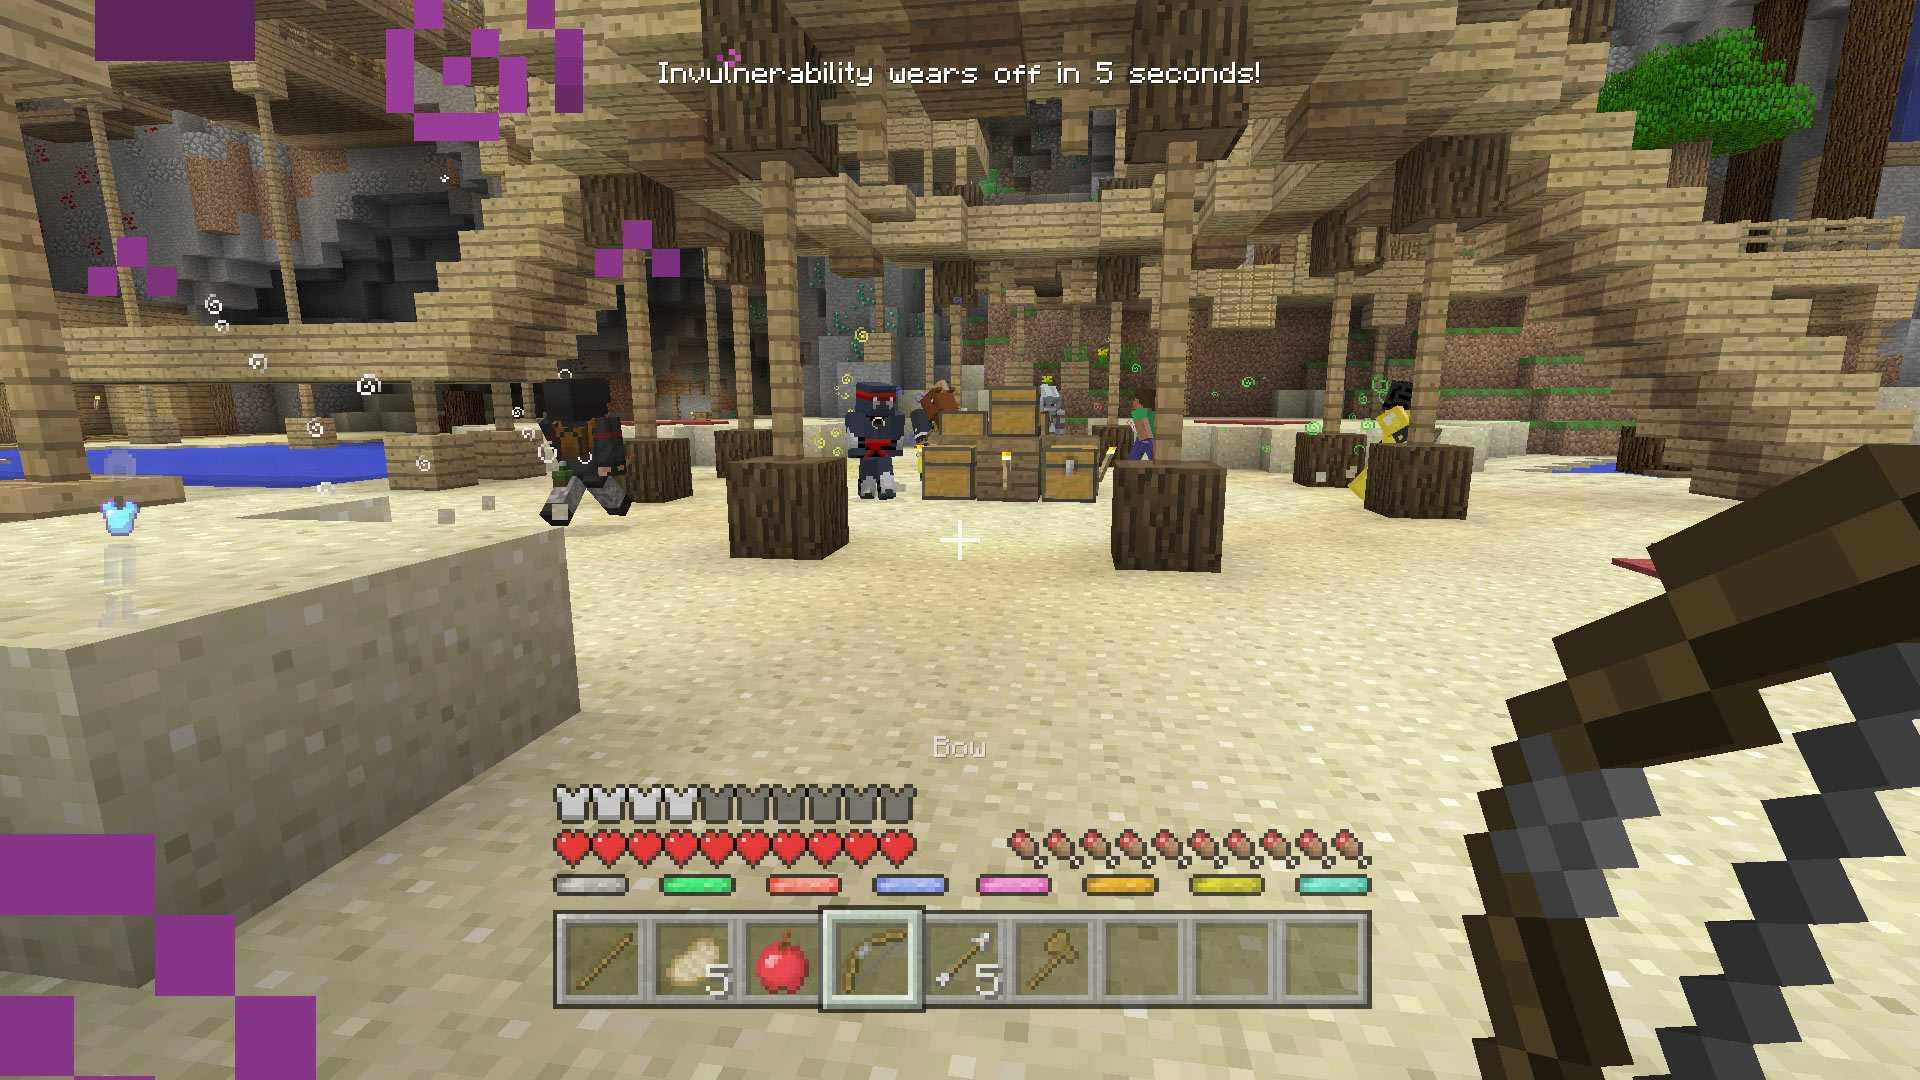 New Minecraft Mini-Game Launched On PS3, PS4, Xbox 360 and Xbox One